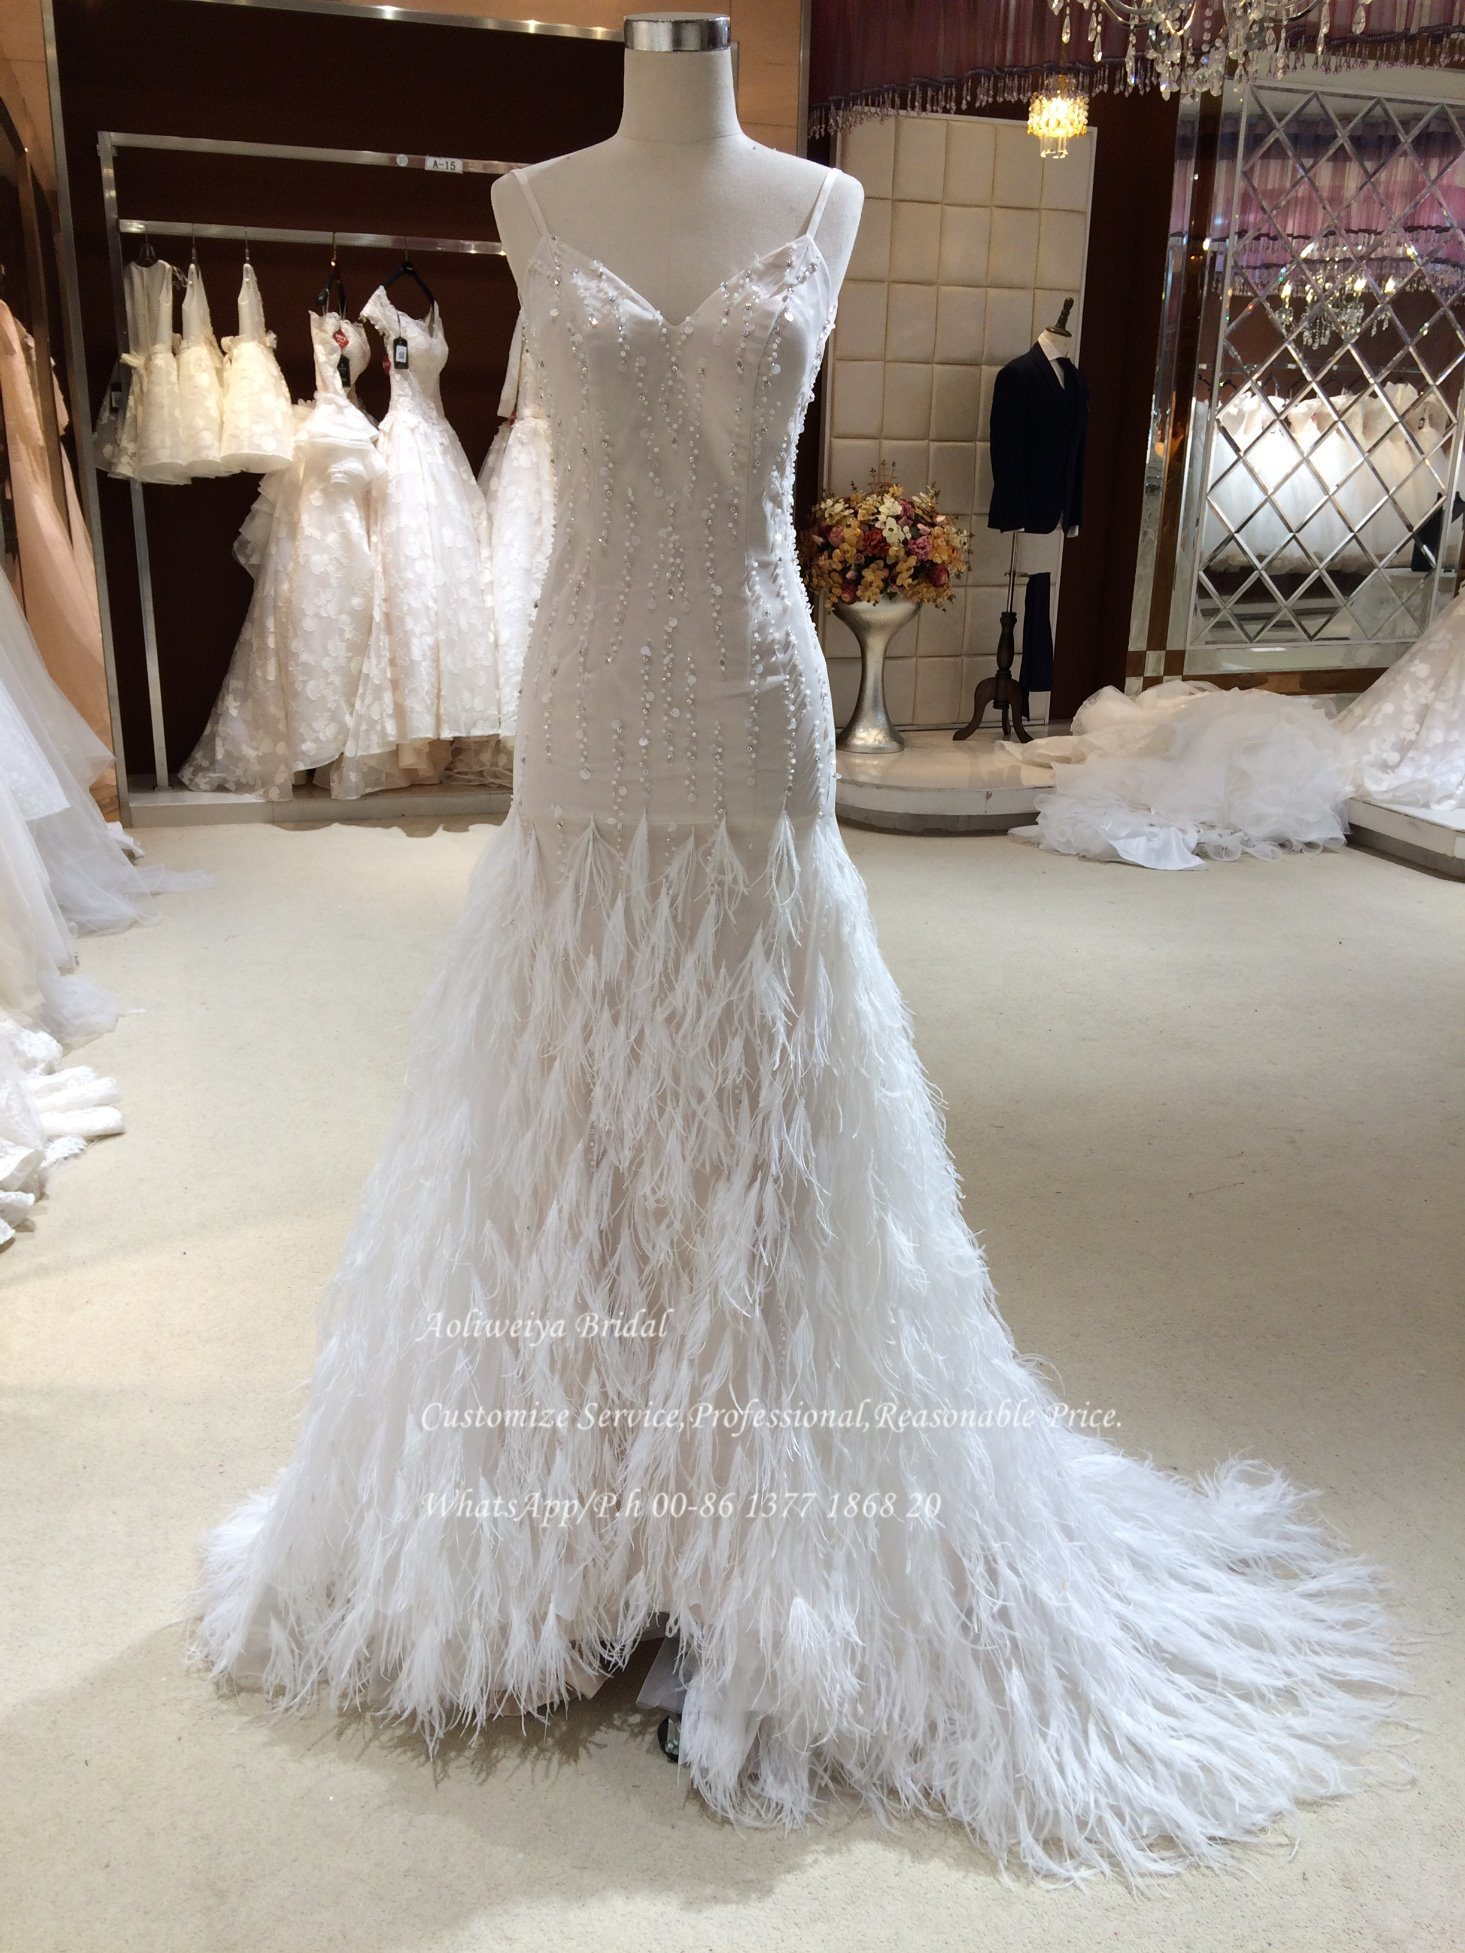 China Aoliweiya Bridal Feather Trumpet Wedding Dress China Wedding